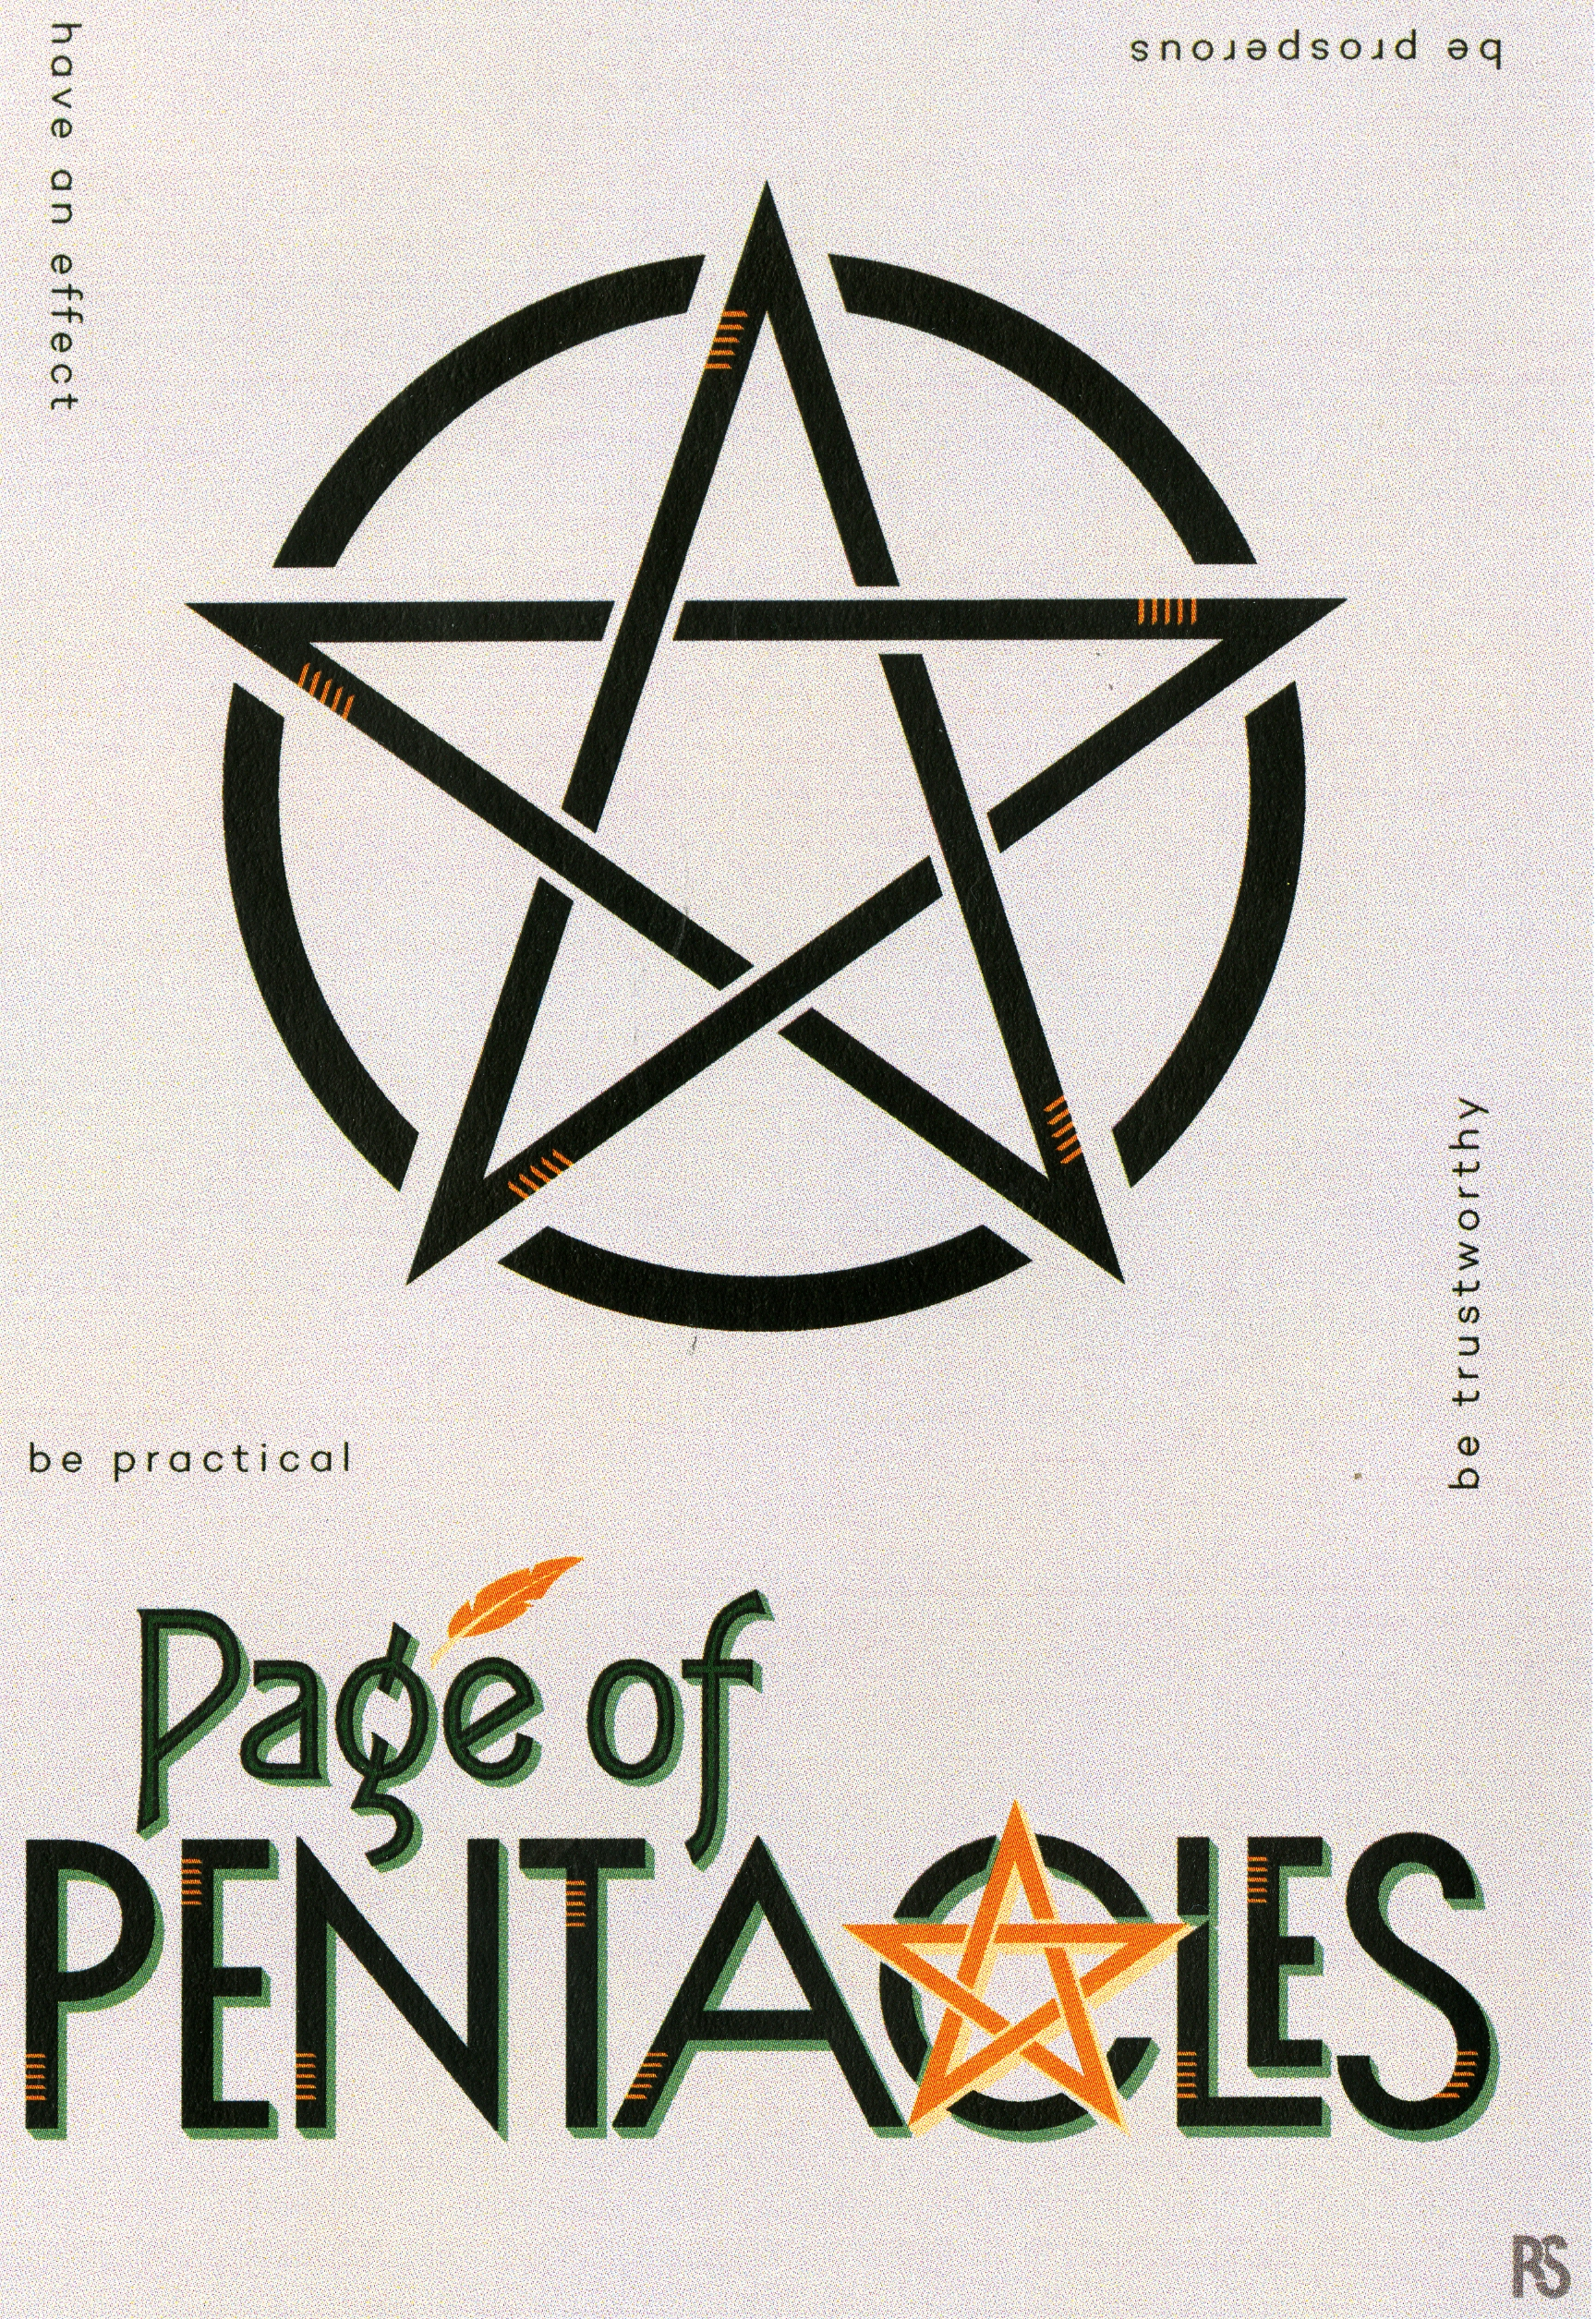 Ryann Staton - Page of Pentacles